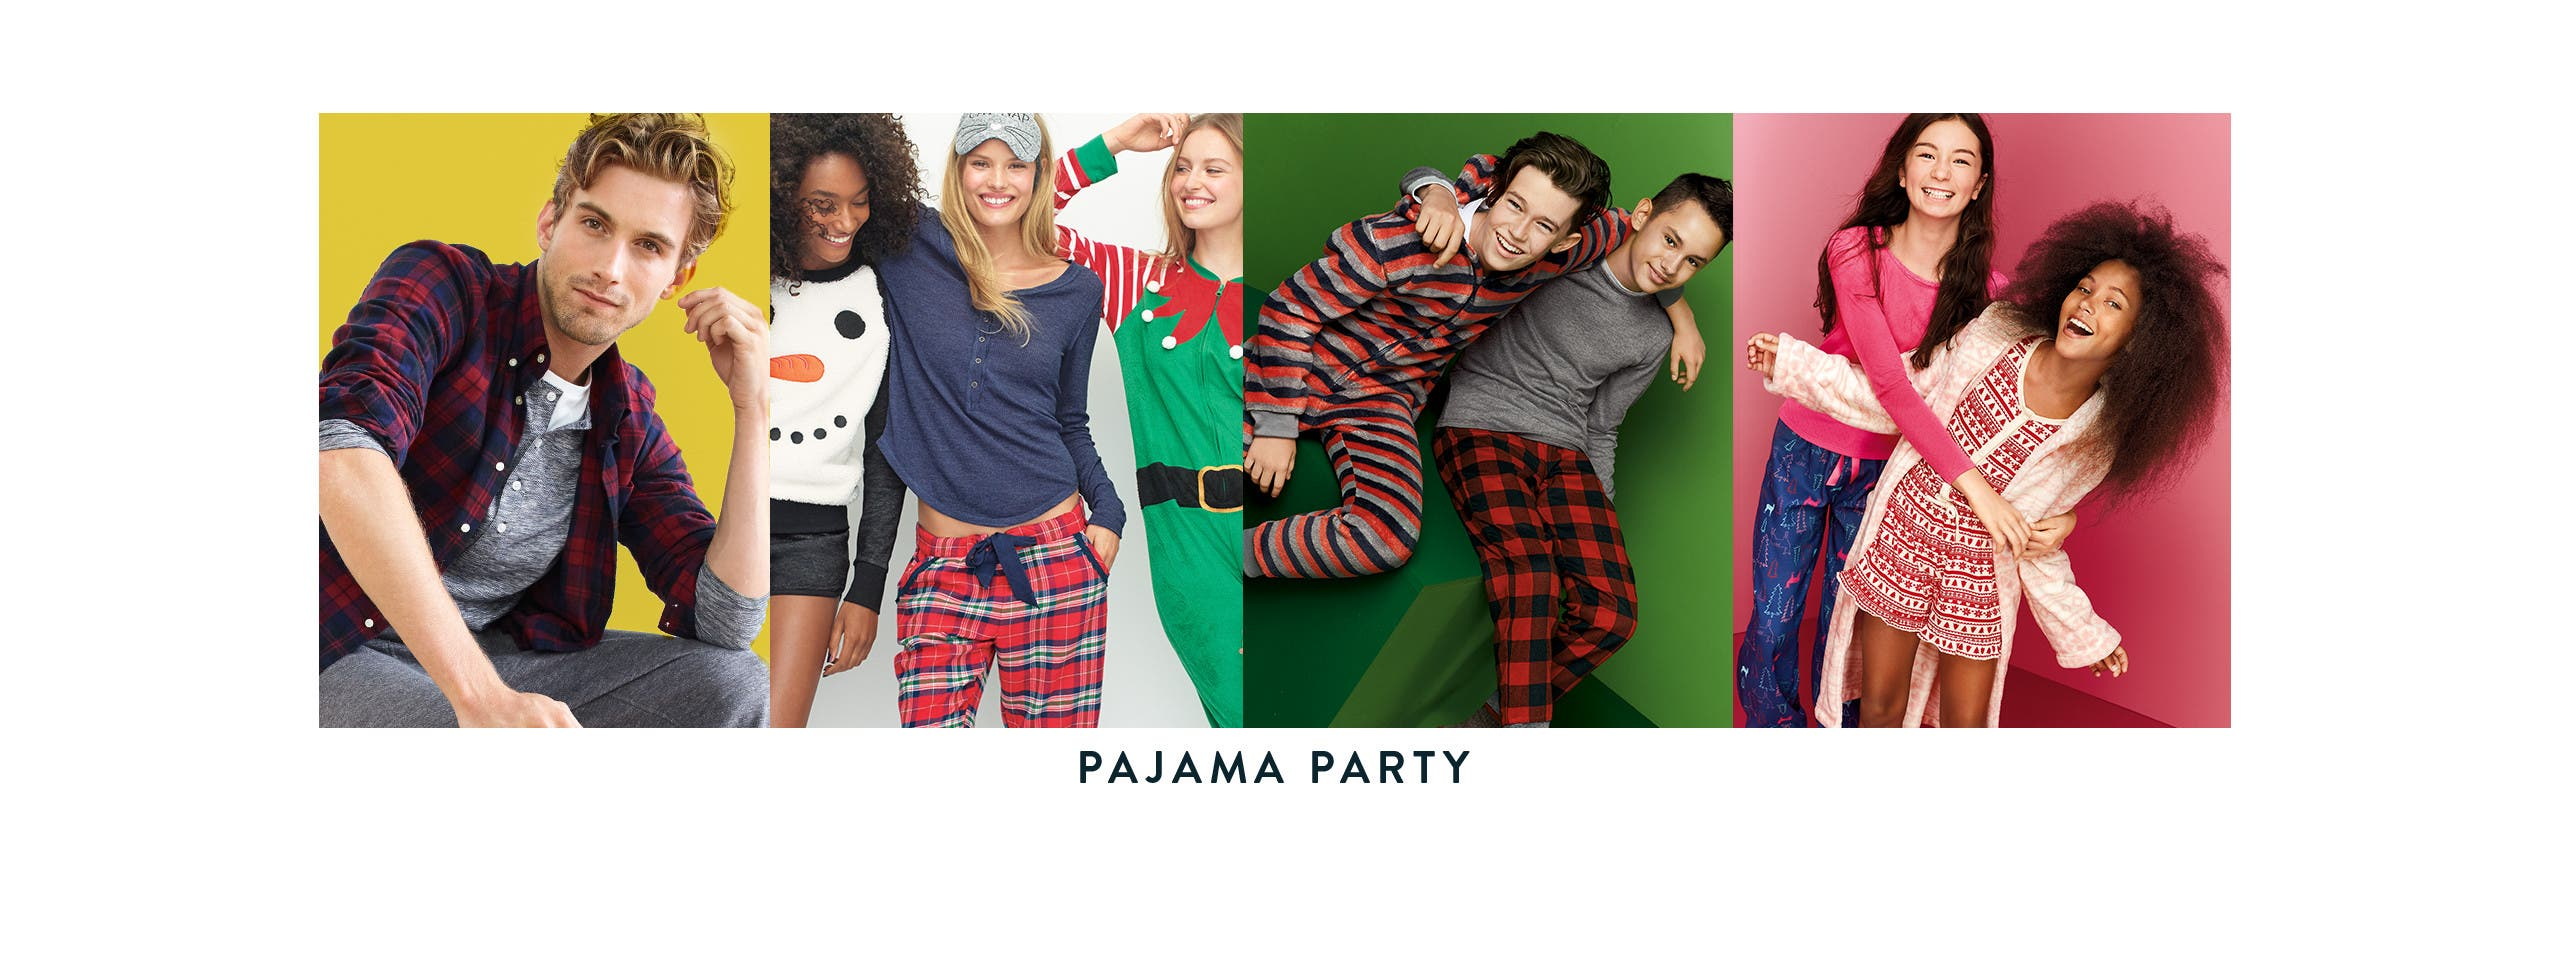 Pajama party gifts for men, women and kids.